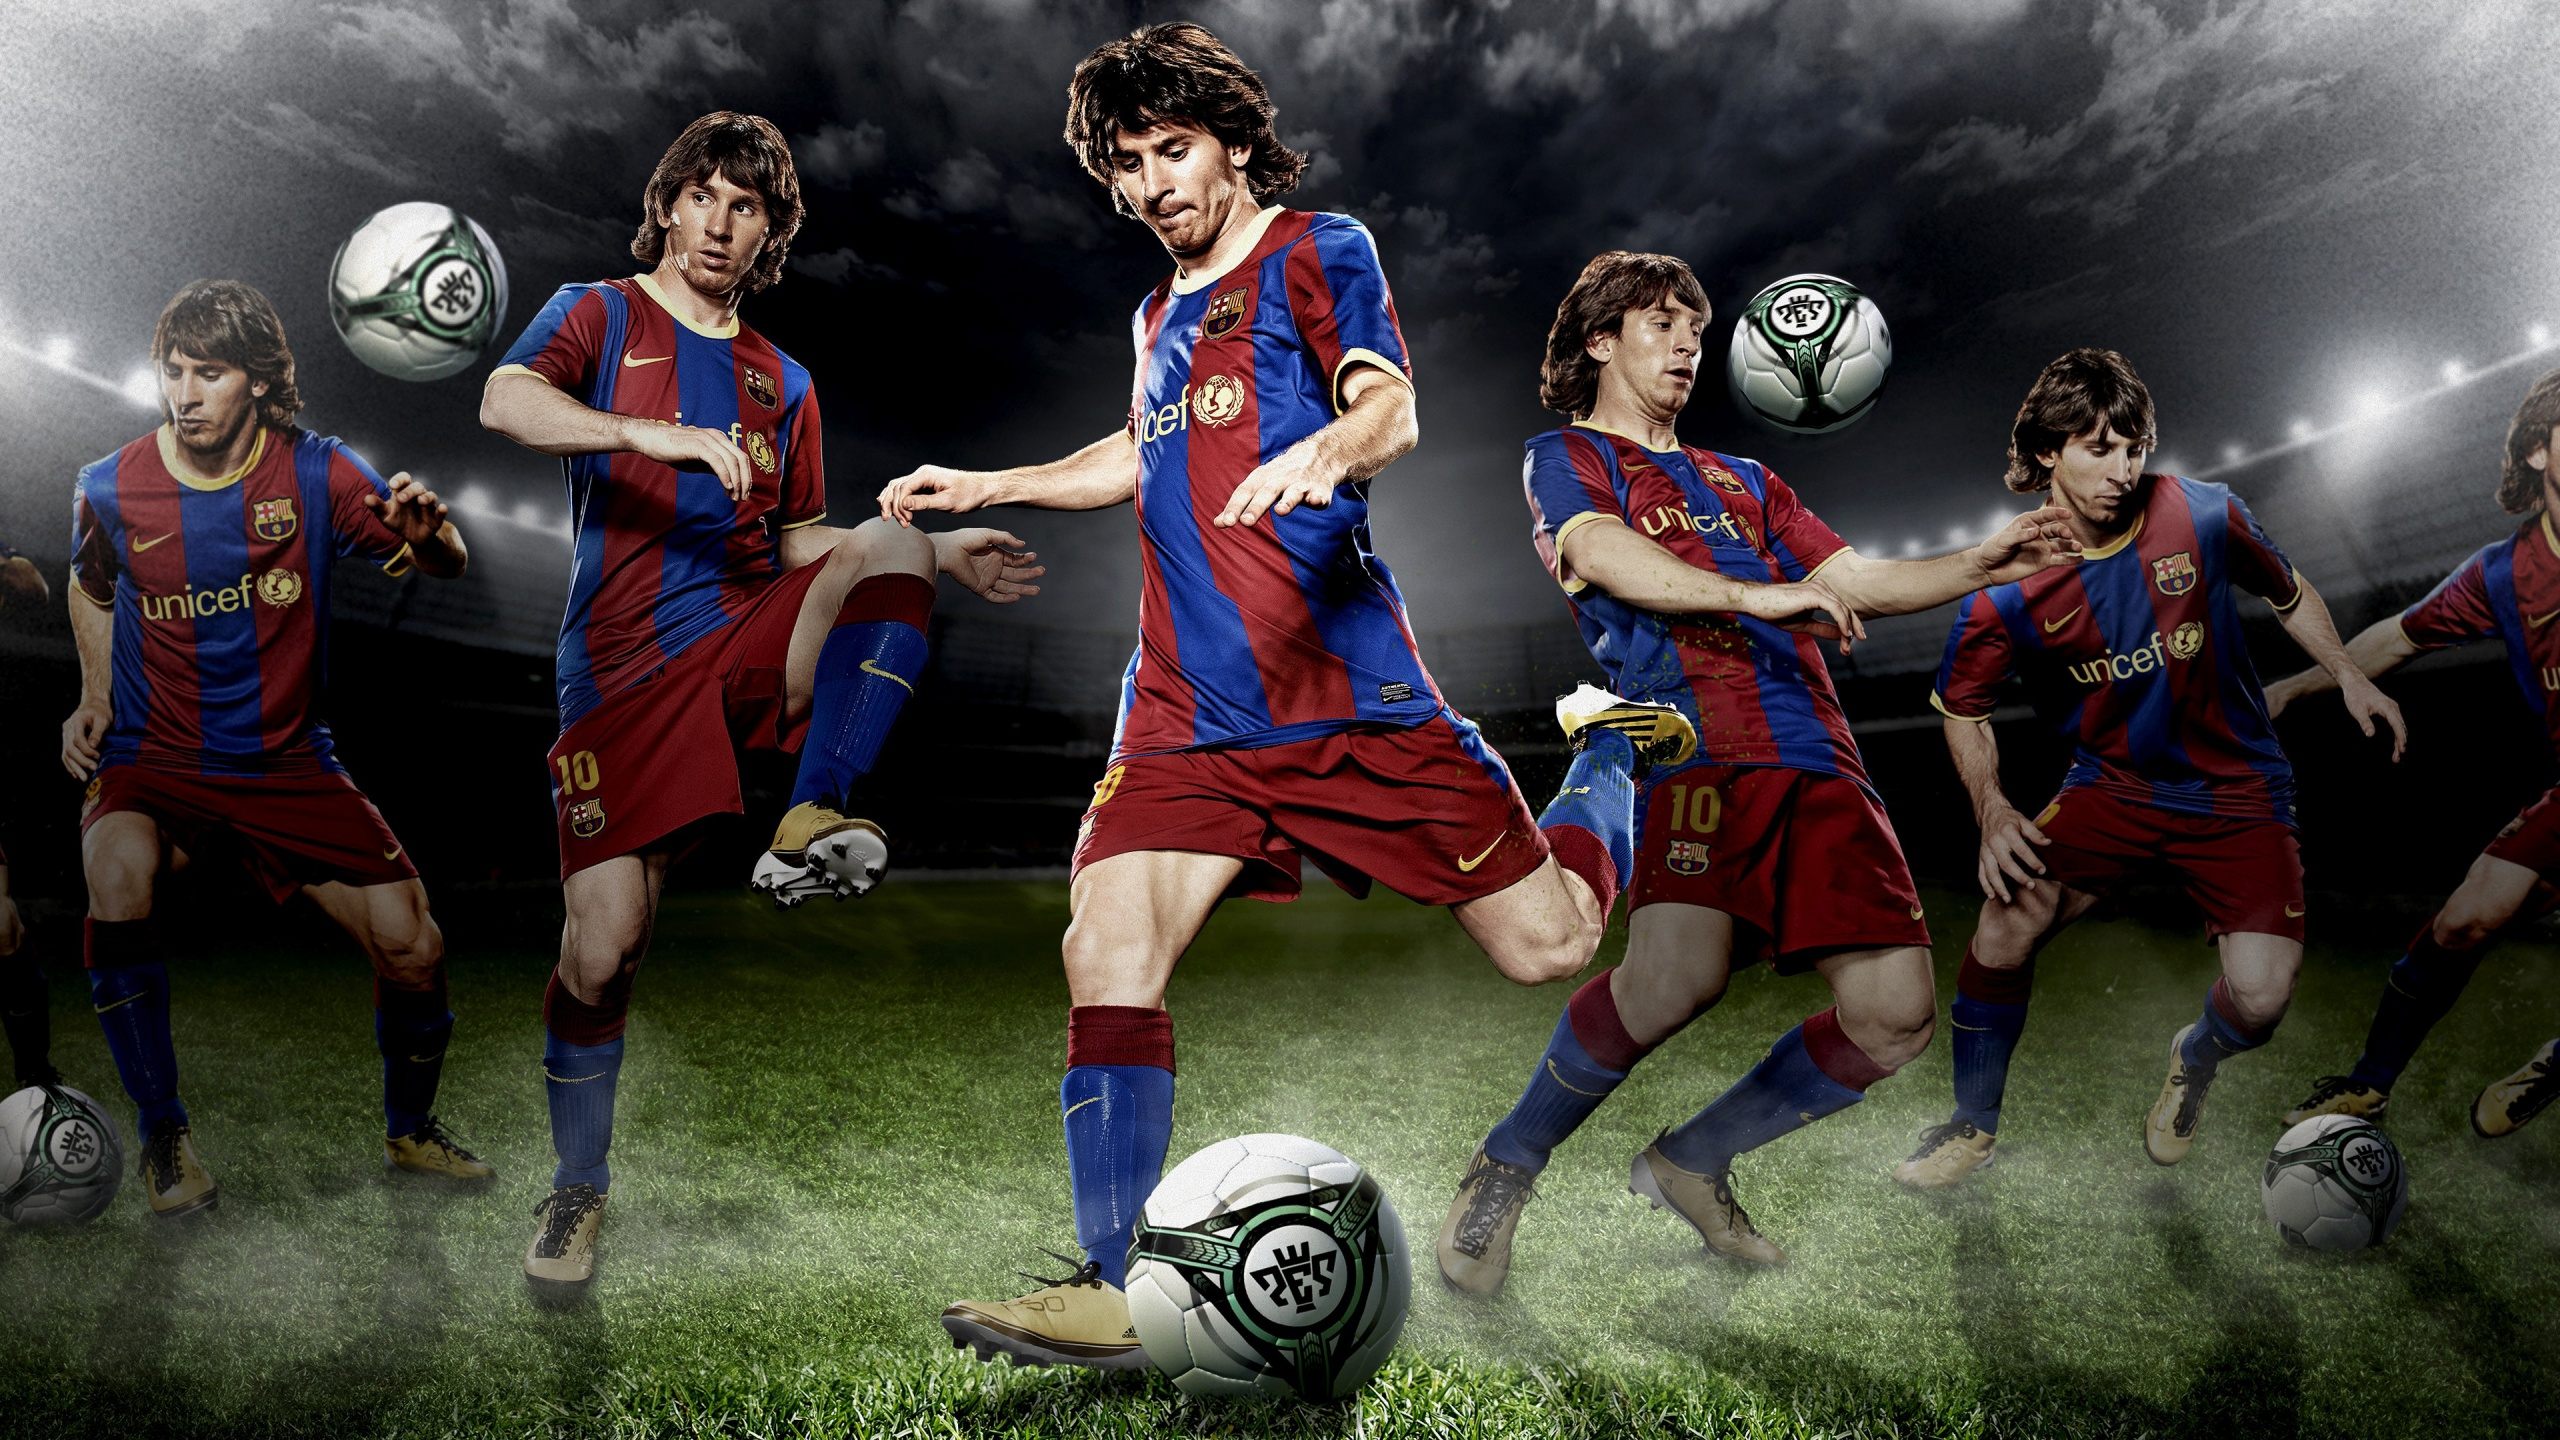 Soccer Player Lionel Messi 4k Wallpapers In Jpg Format For Free Download